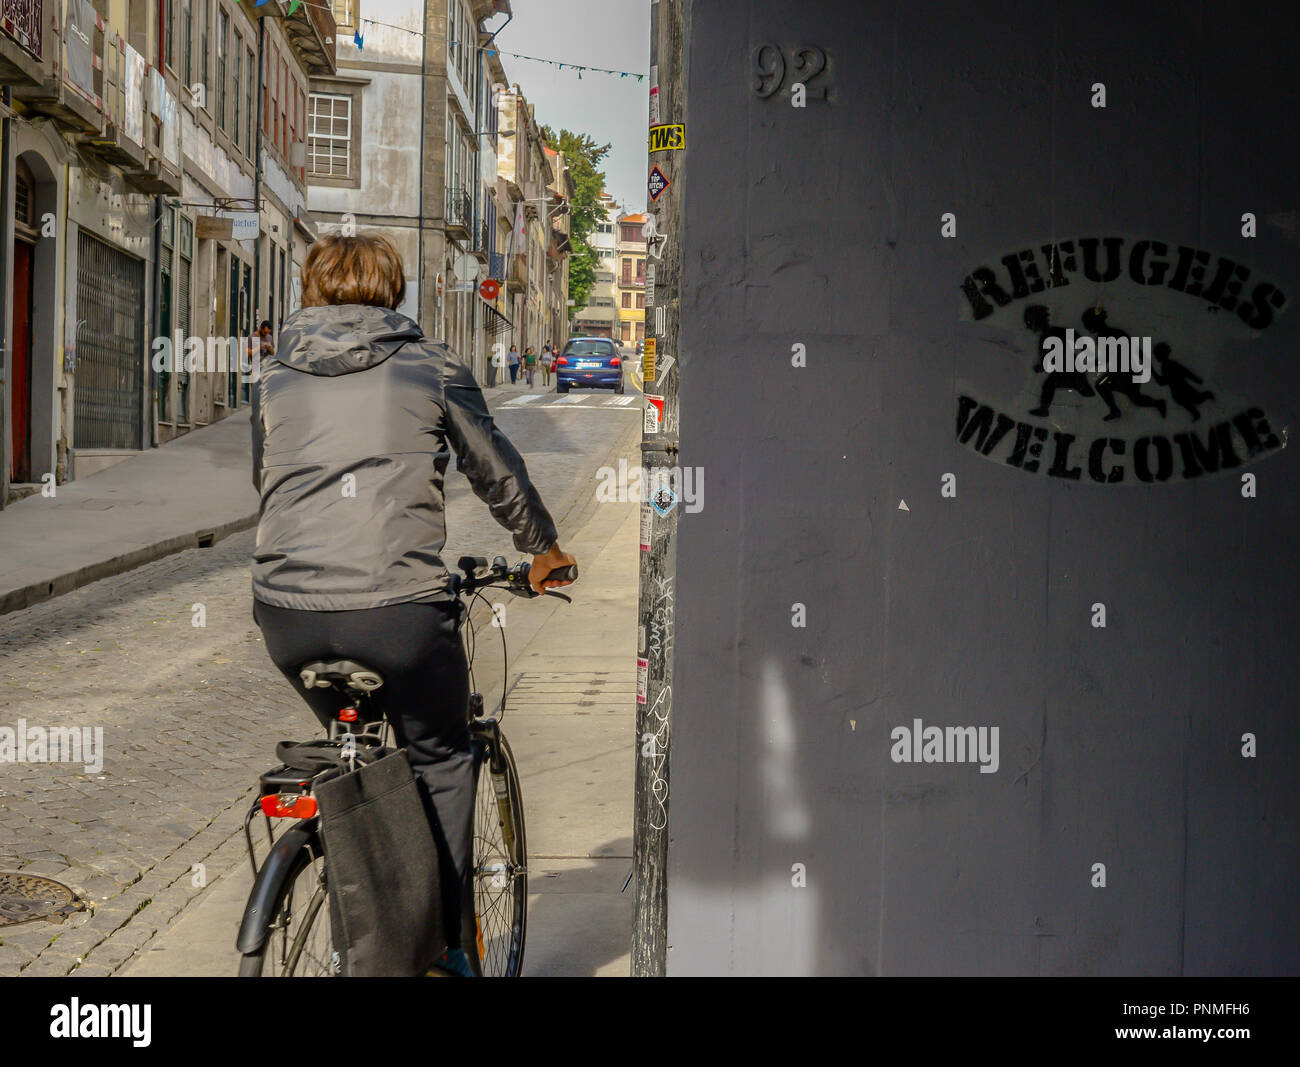 A woman riding past a political message - Spain - Stock Image